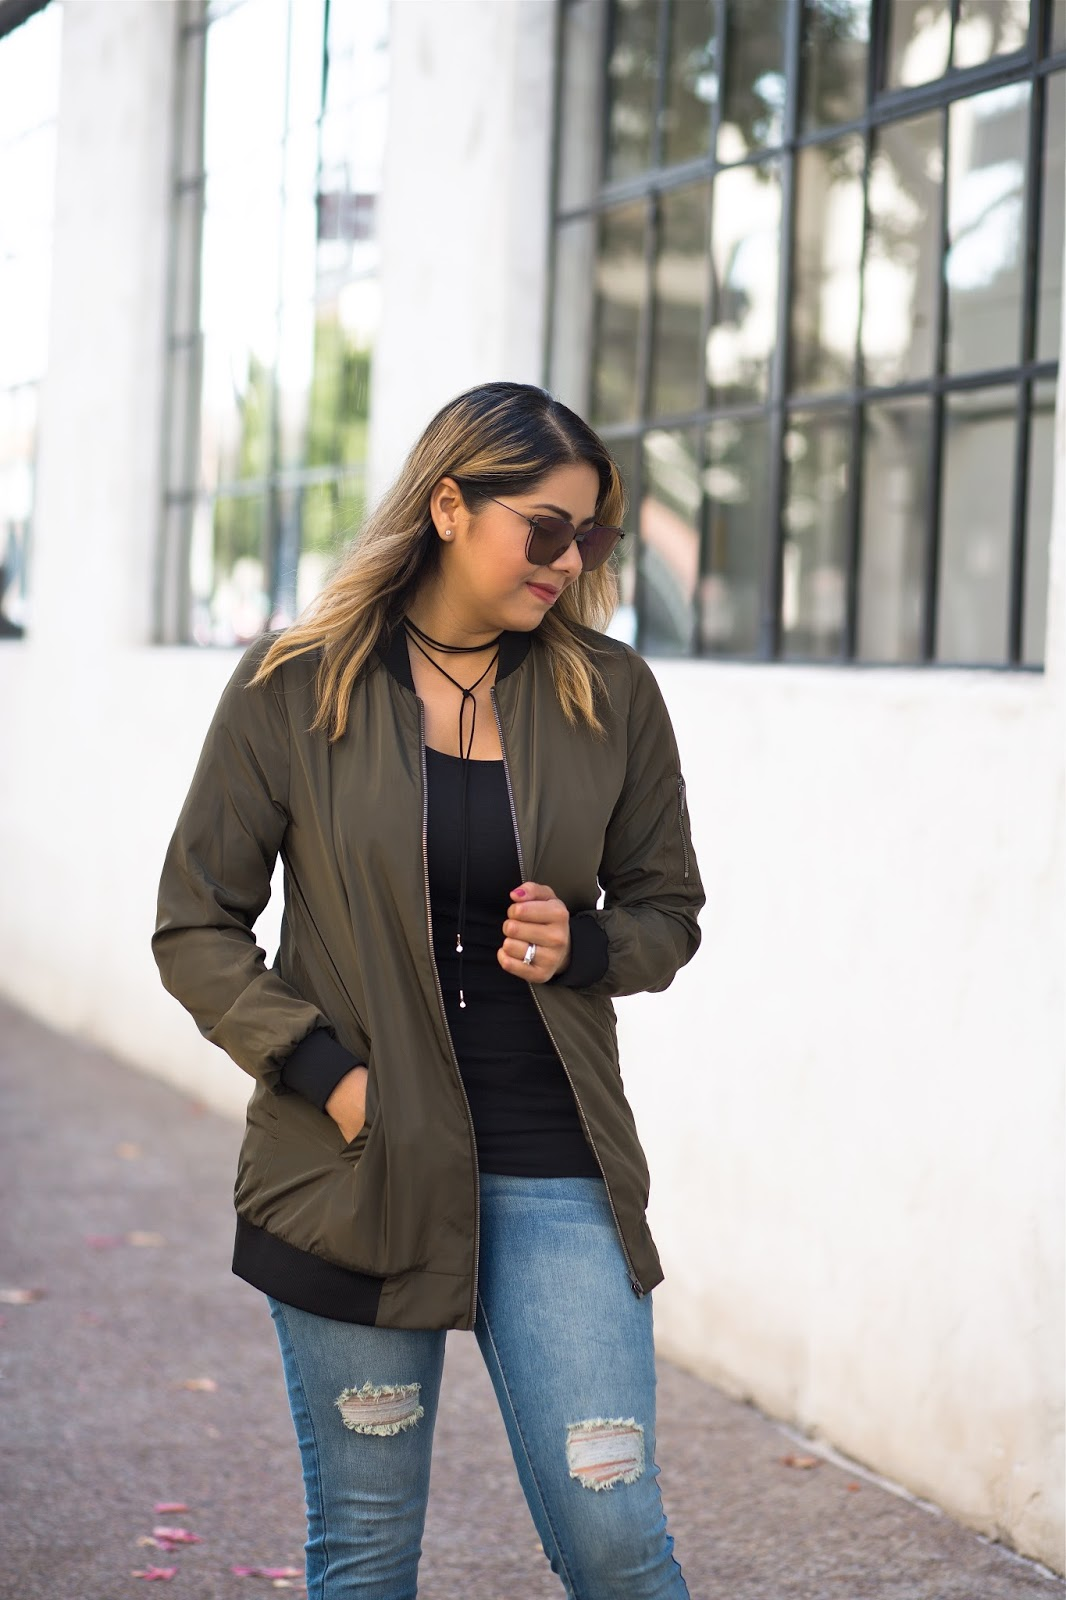 how to wear a bomber jacket, bomber jacket outfit idea, bomber jacket for fall 2016